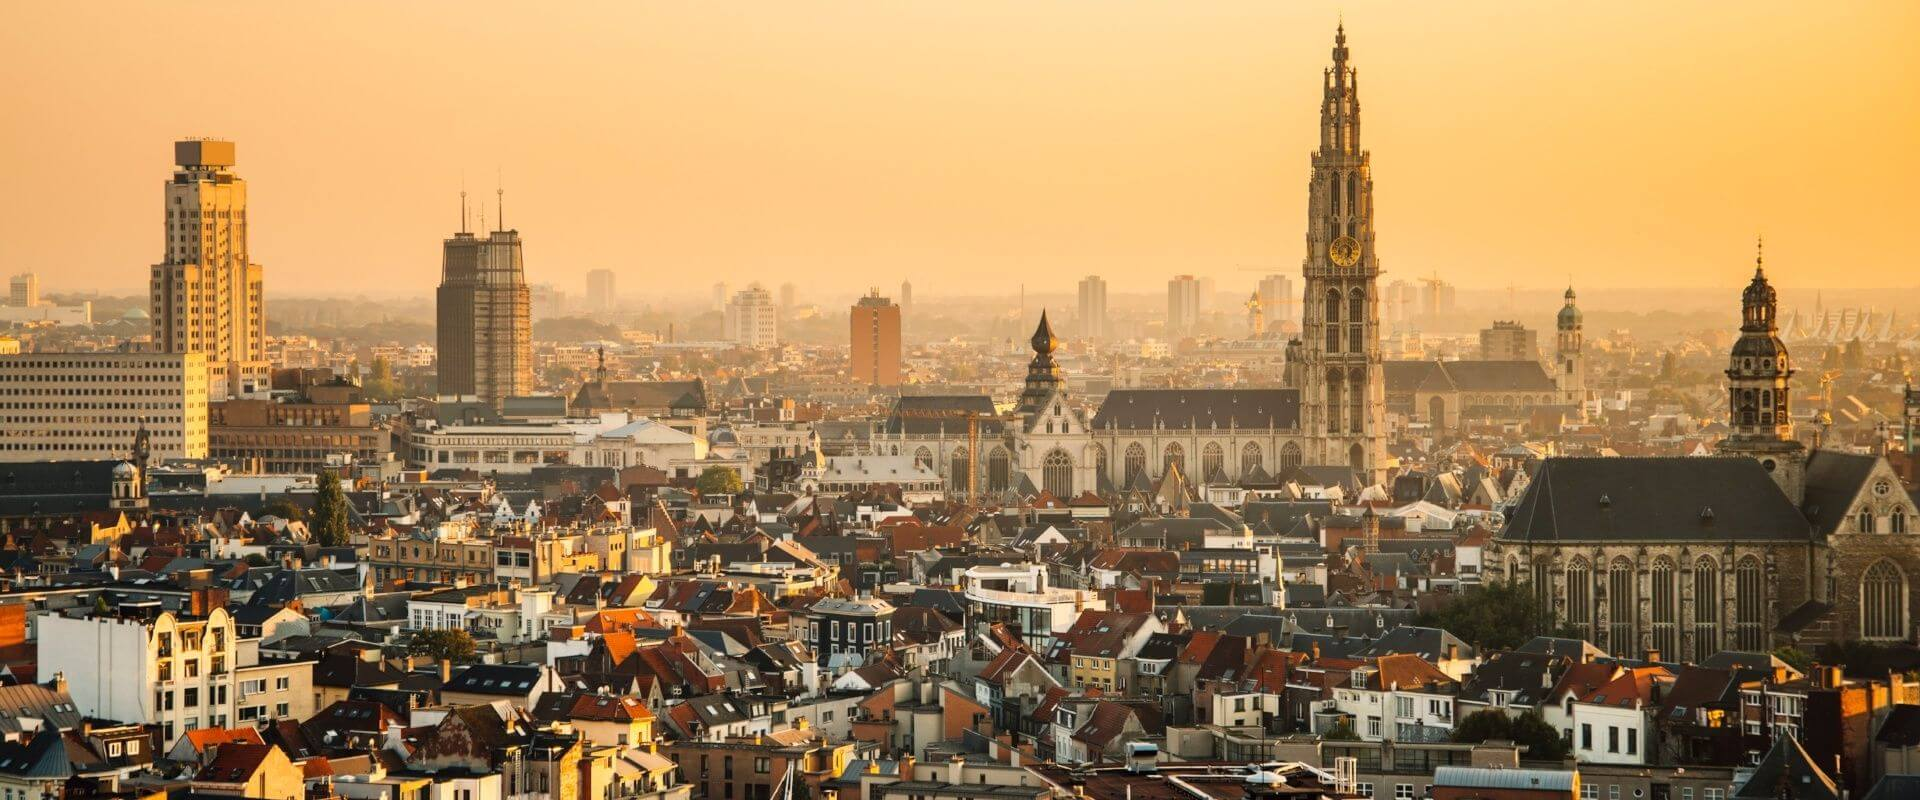 city-portraits-smart-city-antwerp.jpg